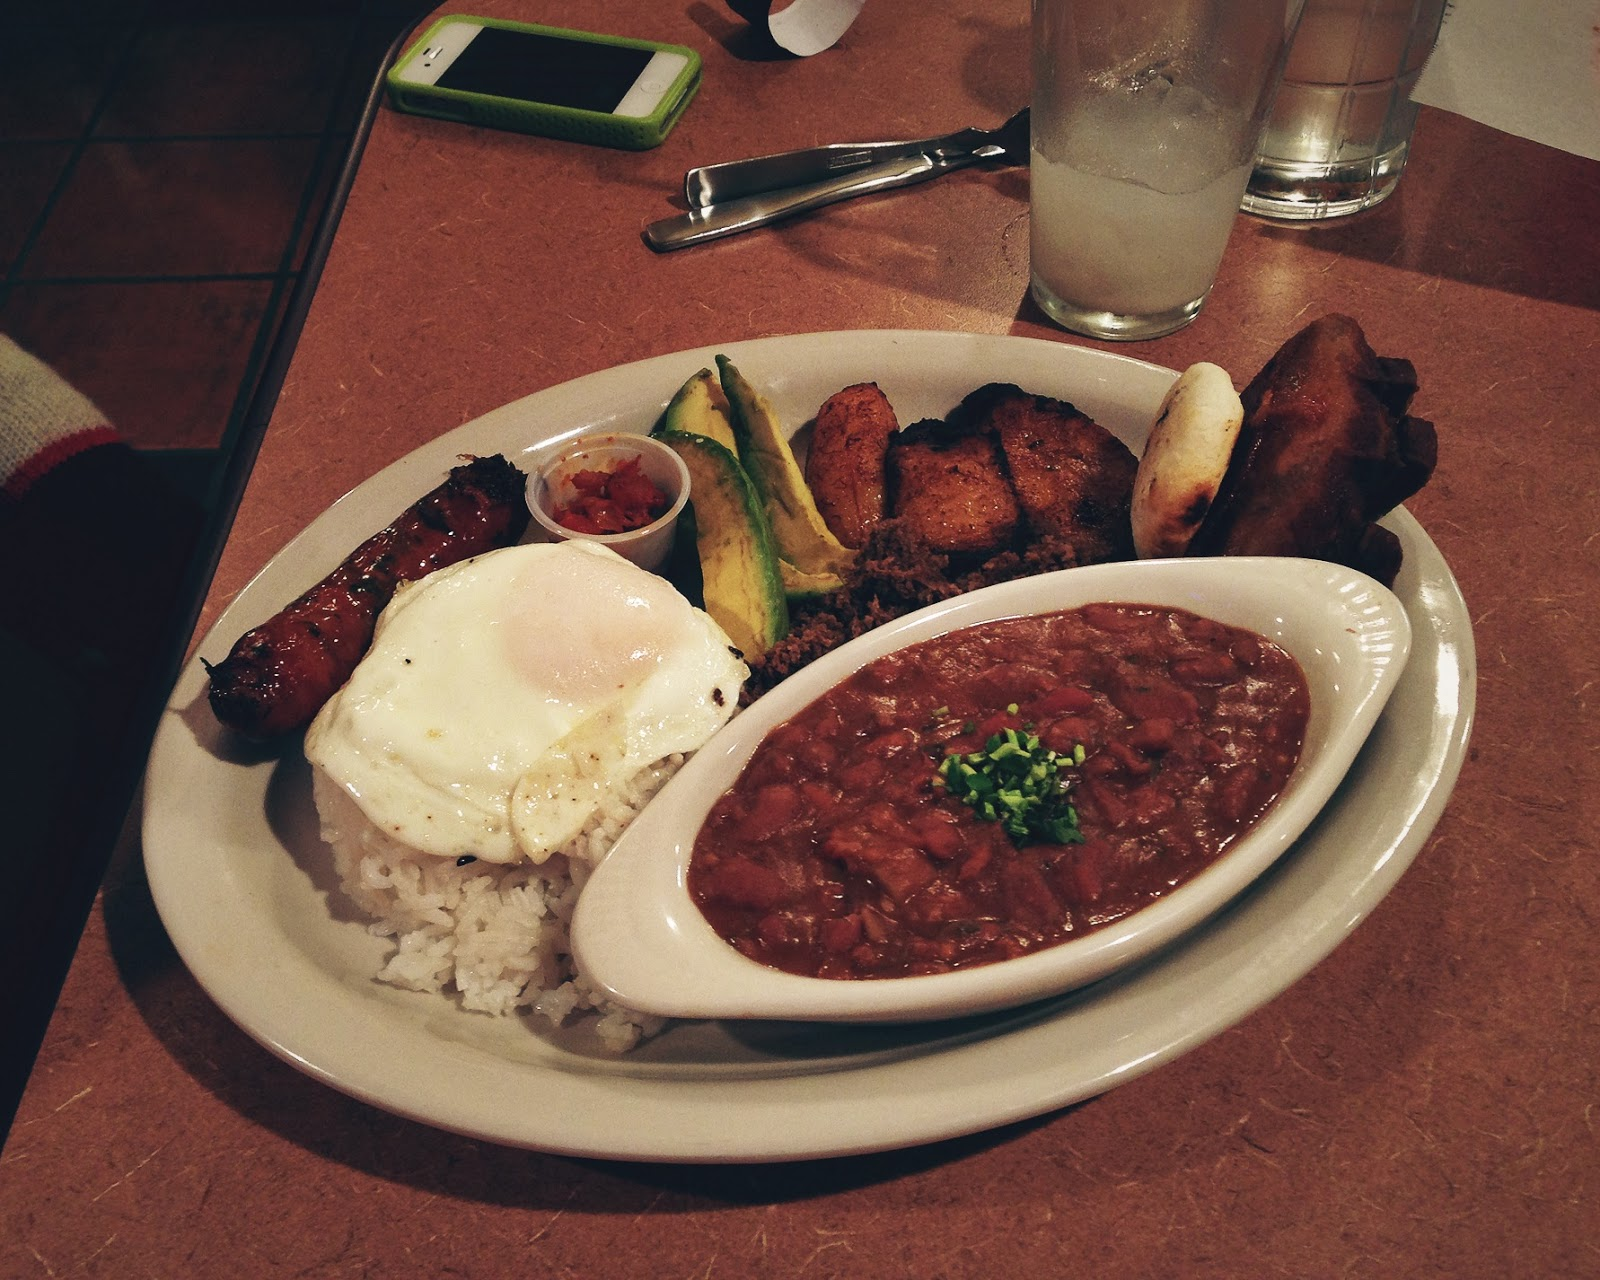 Badeja Piasa at Guanttanamera restaurant in Nashville Tennessee